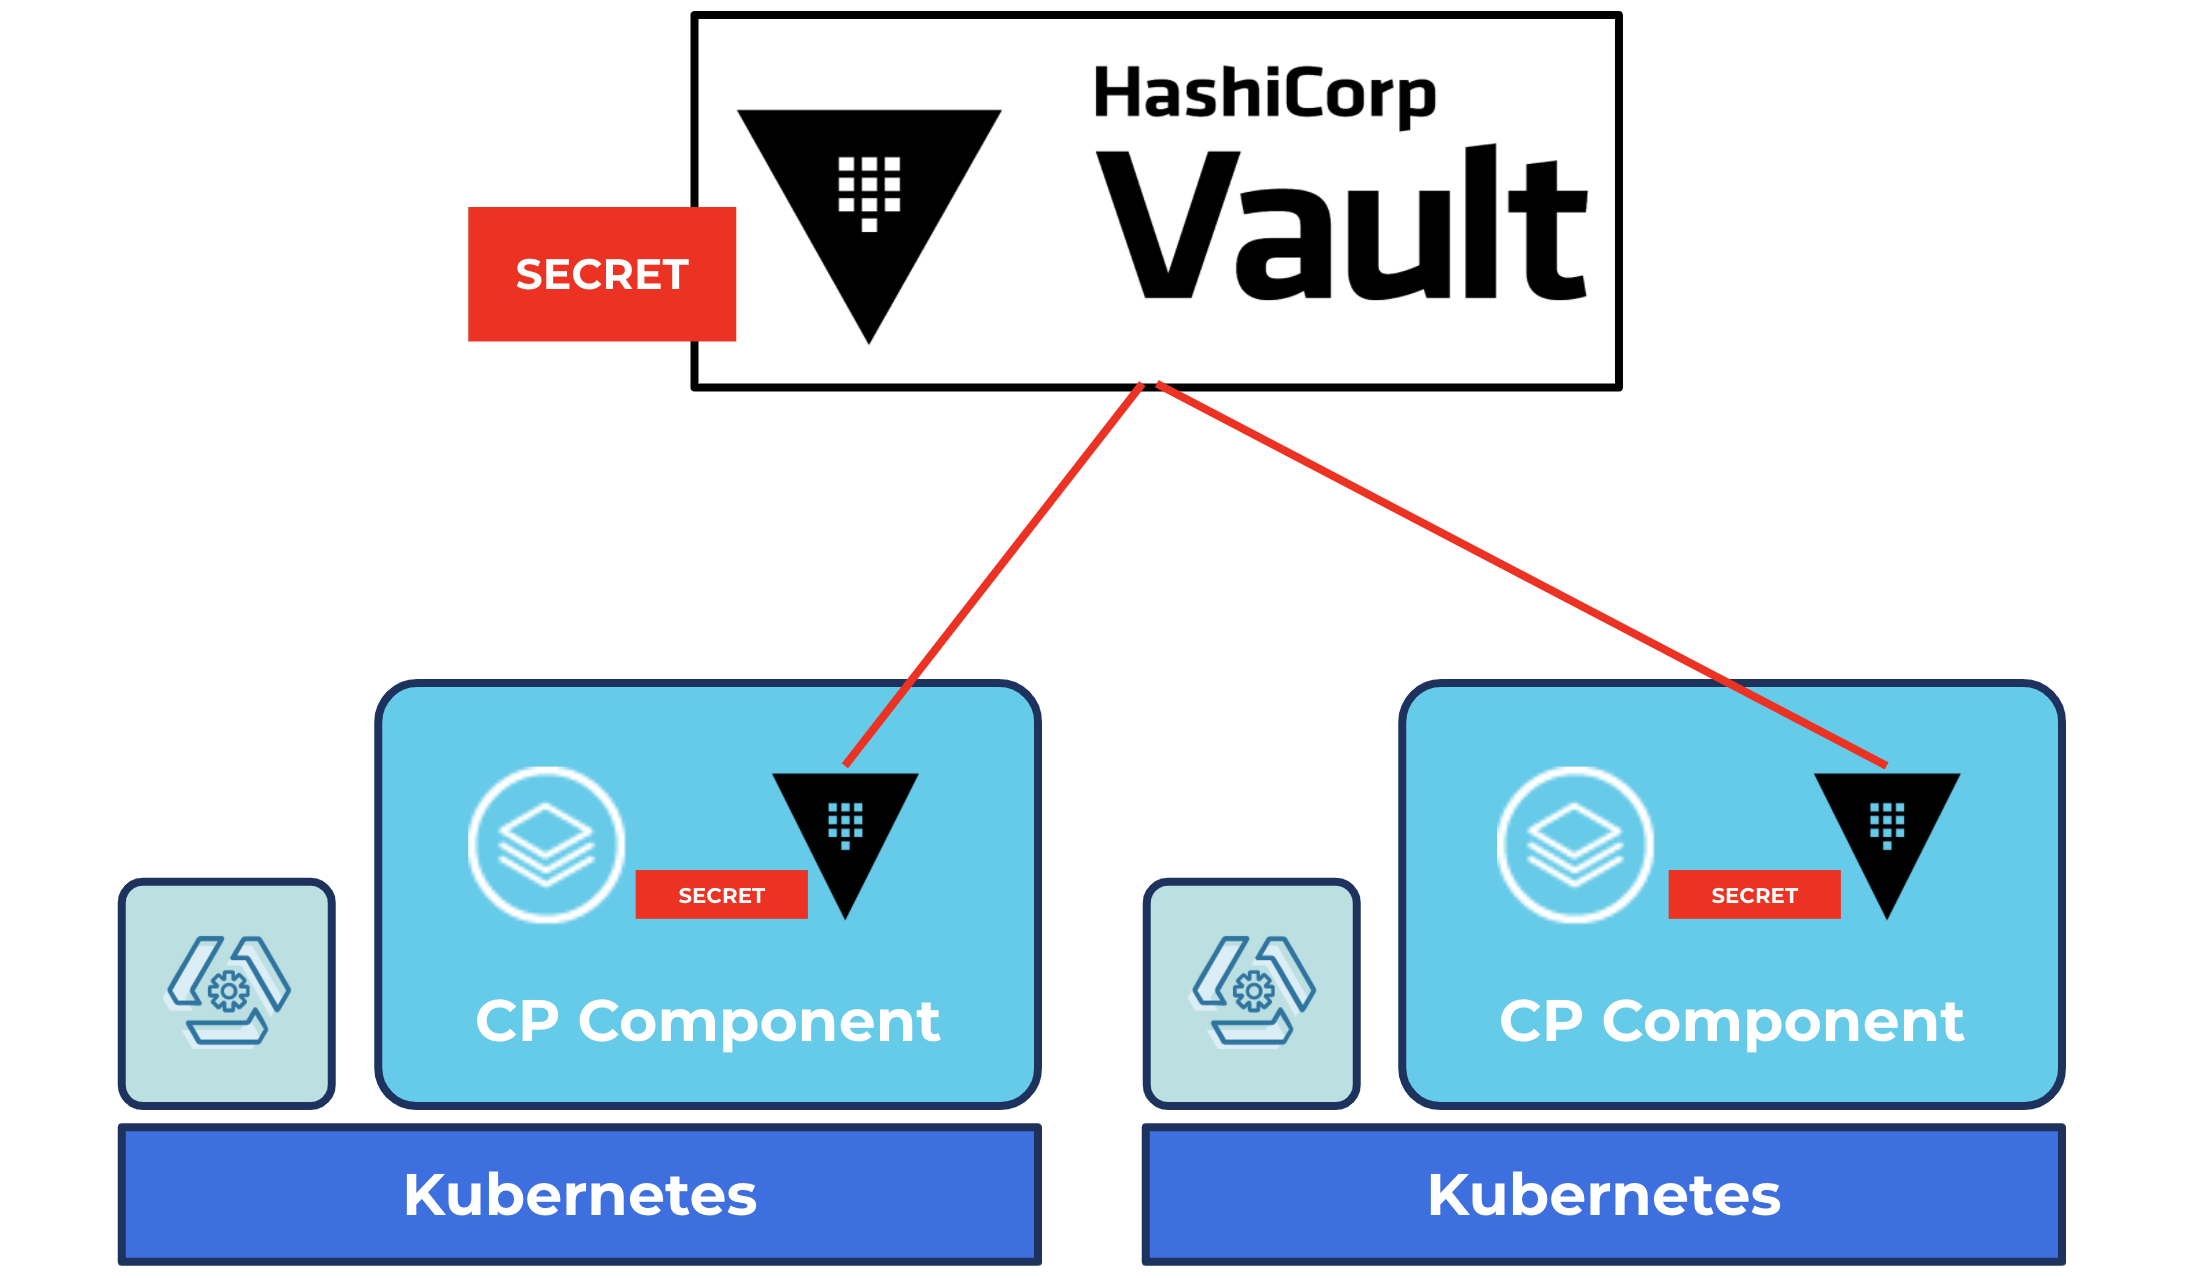 HashiCorp Vault for managing secrets